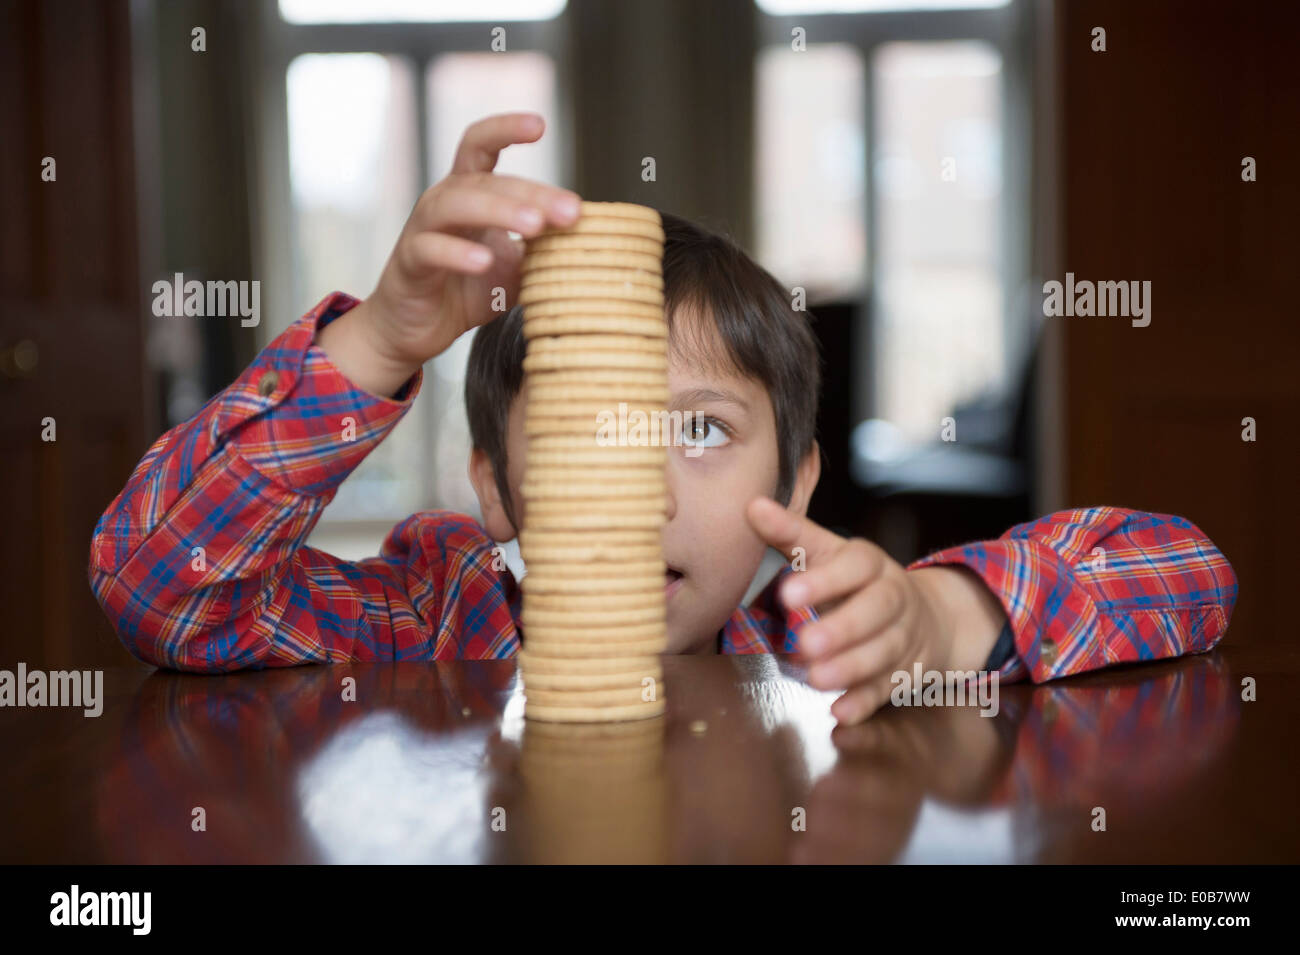 Boy stacking up biscuits - Stock Image